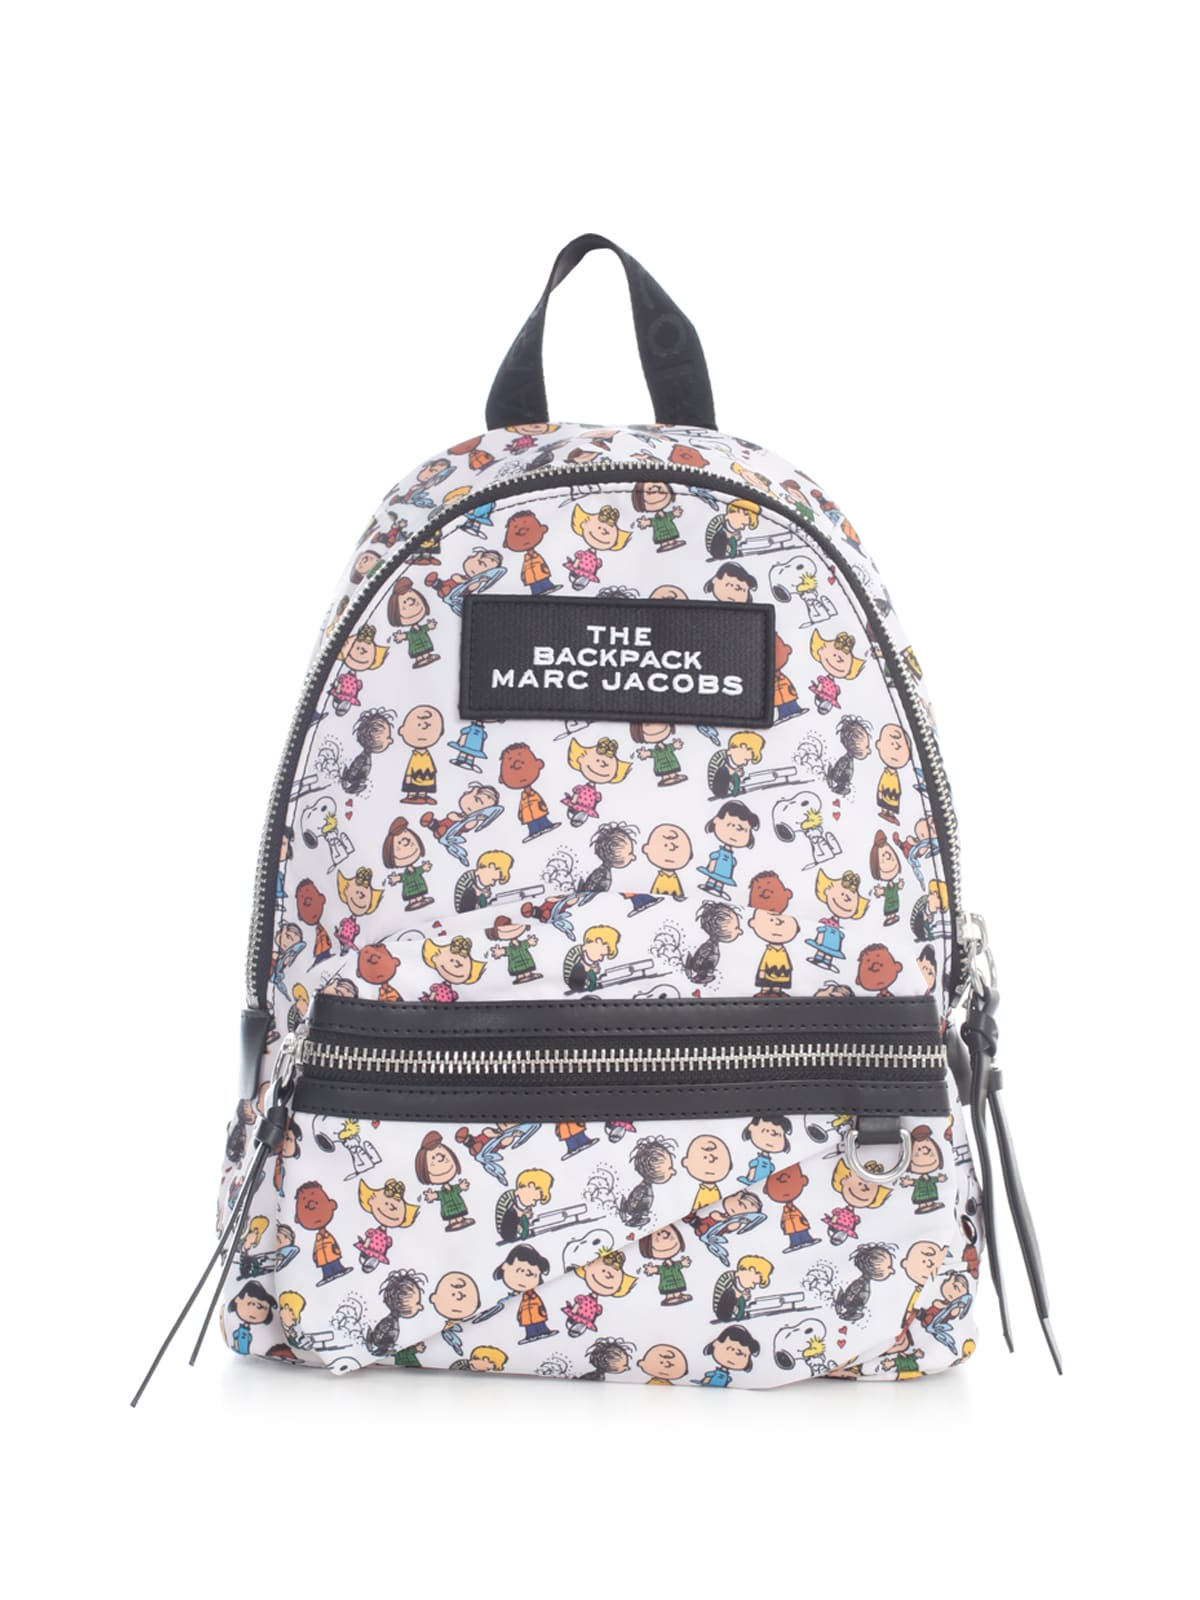 Marc Jacobs The Backpack Peanuts Medium Backpack